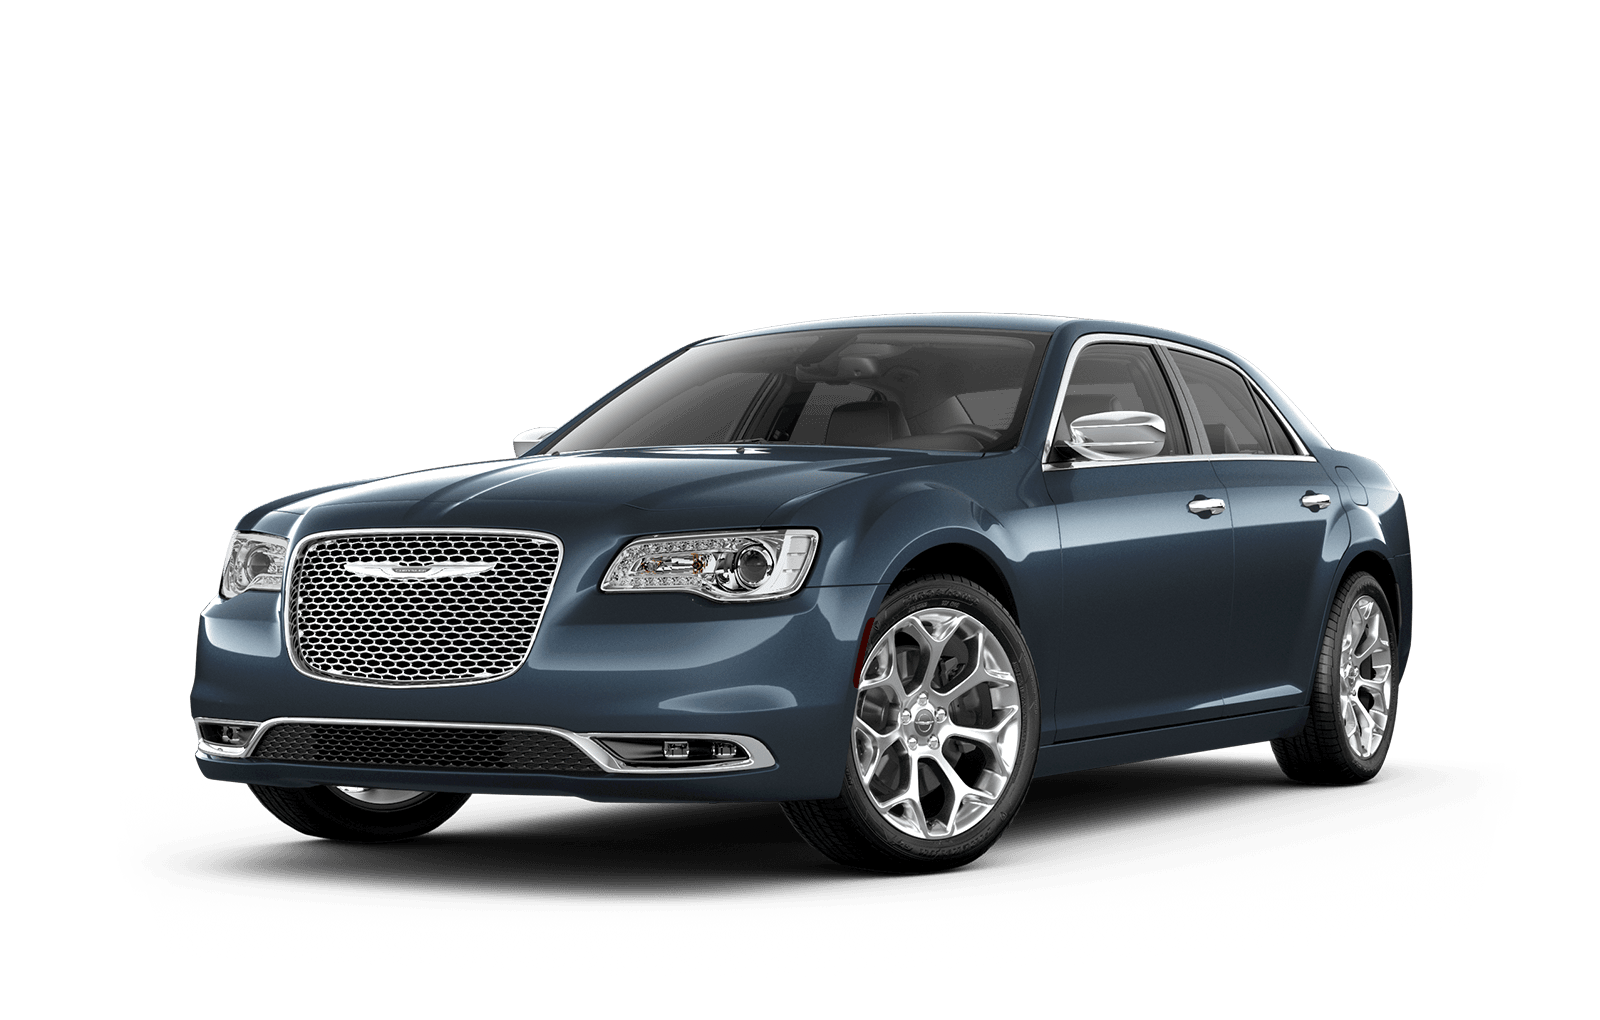 2019 Chrysler 300 Full View in Steel blue with Wheels